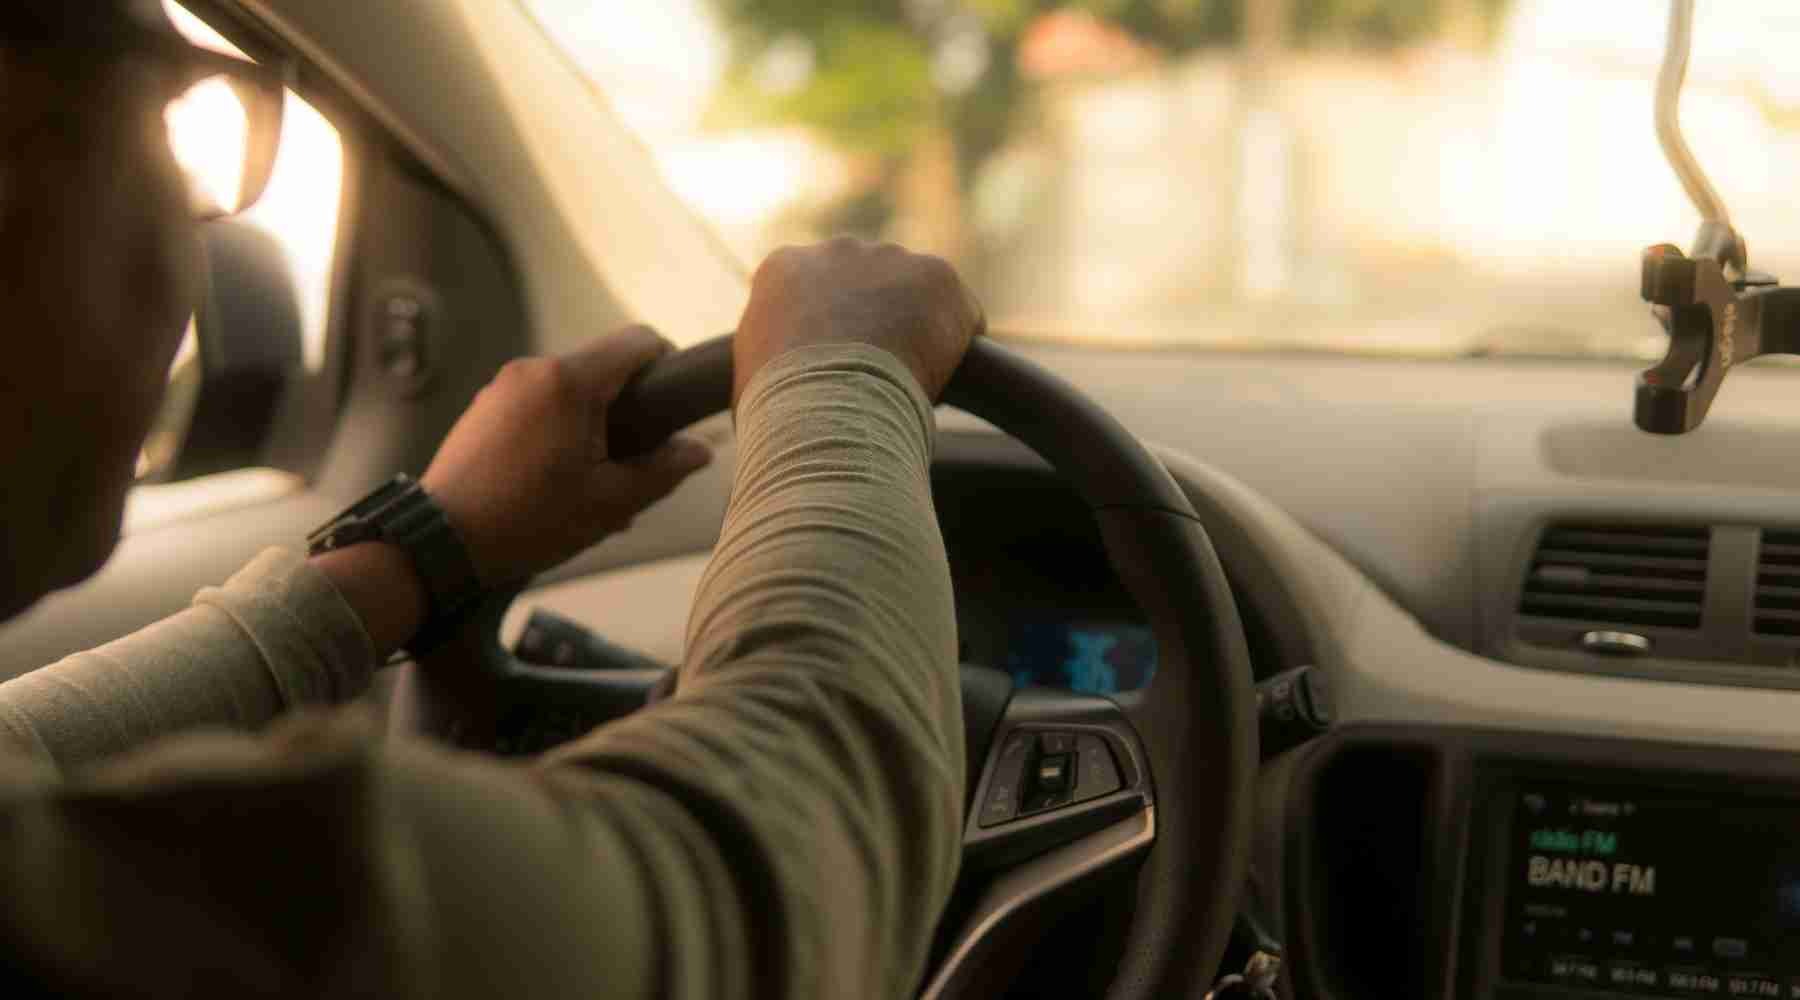 Make $300 Driving for Ridehailing Services